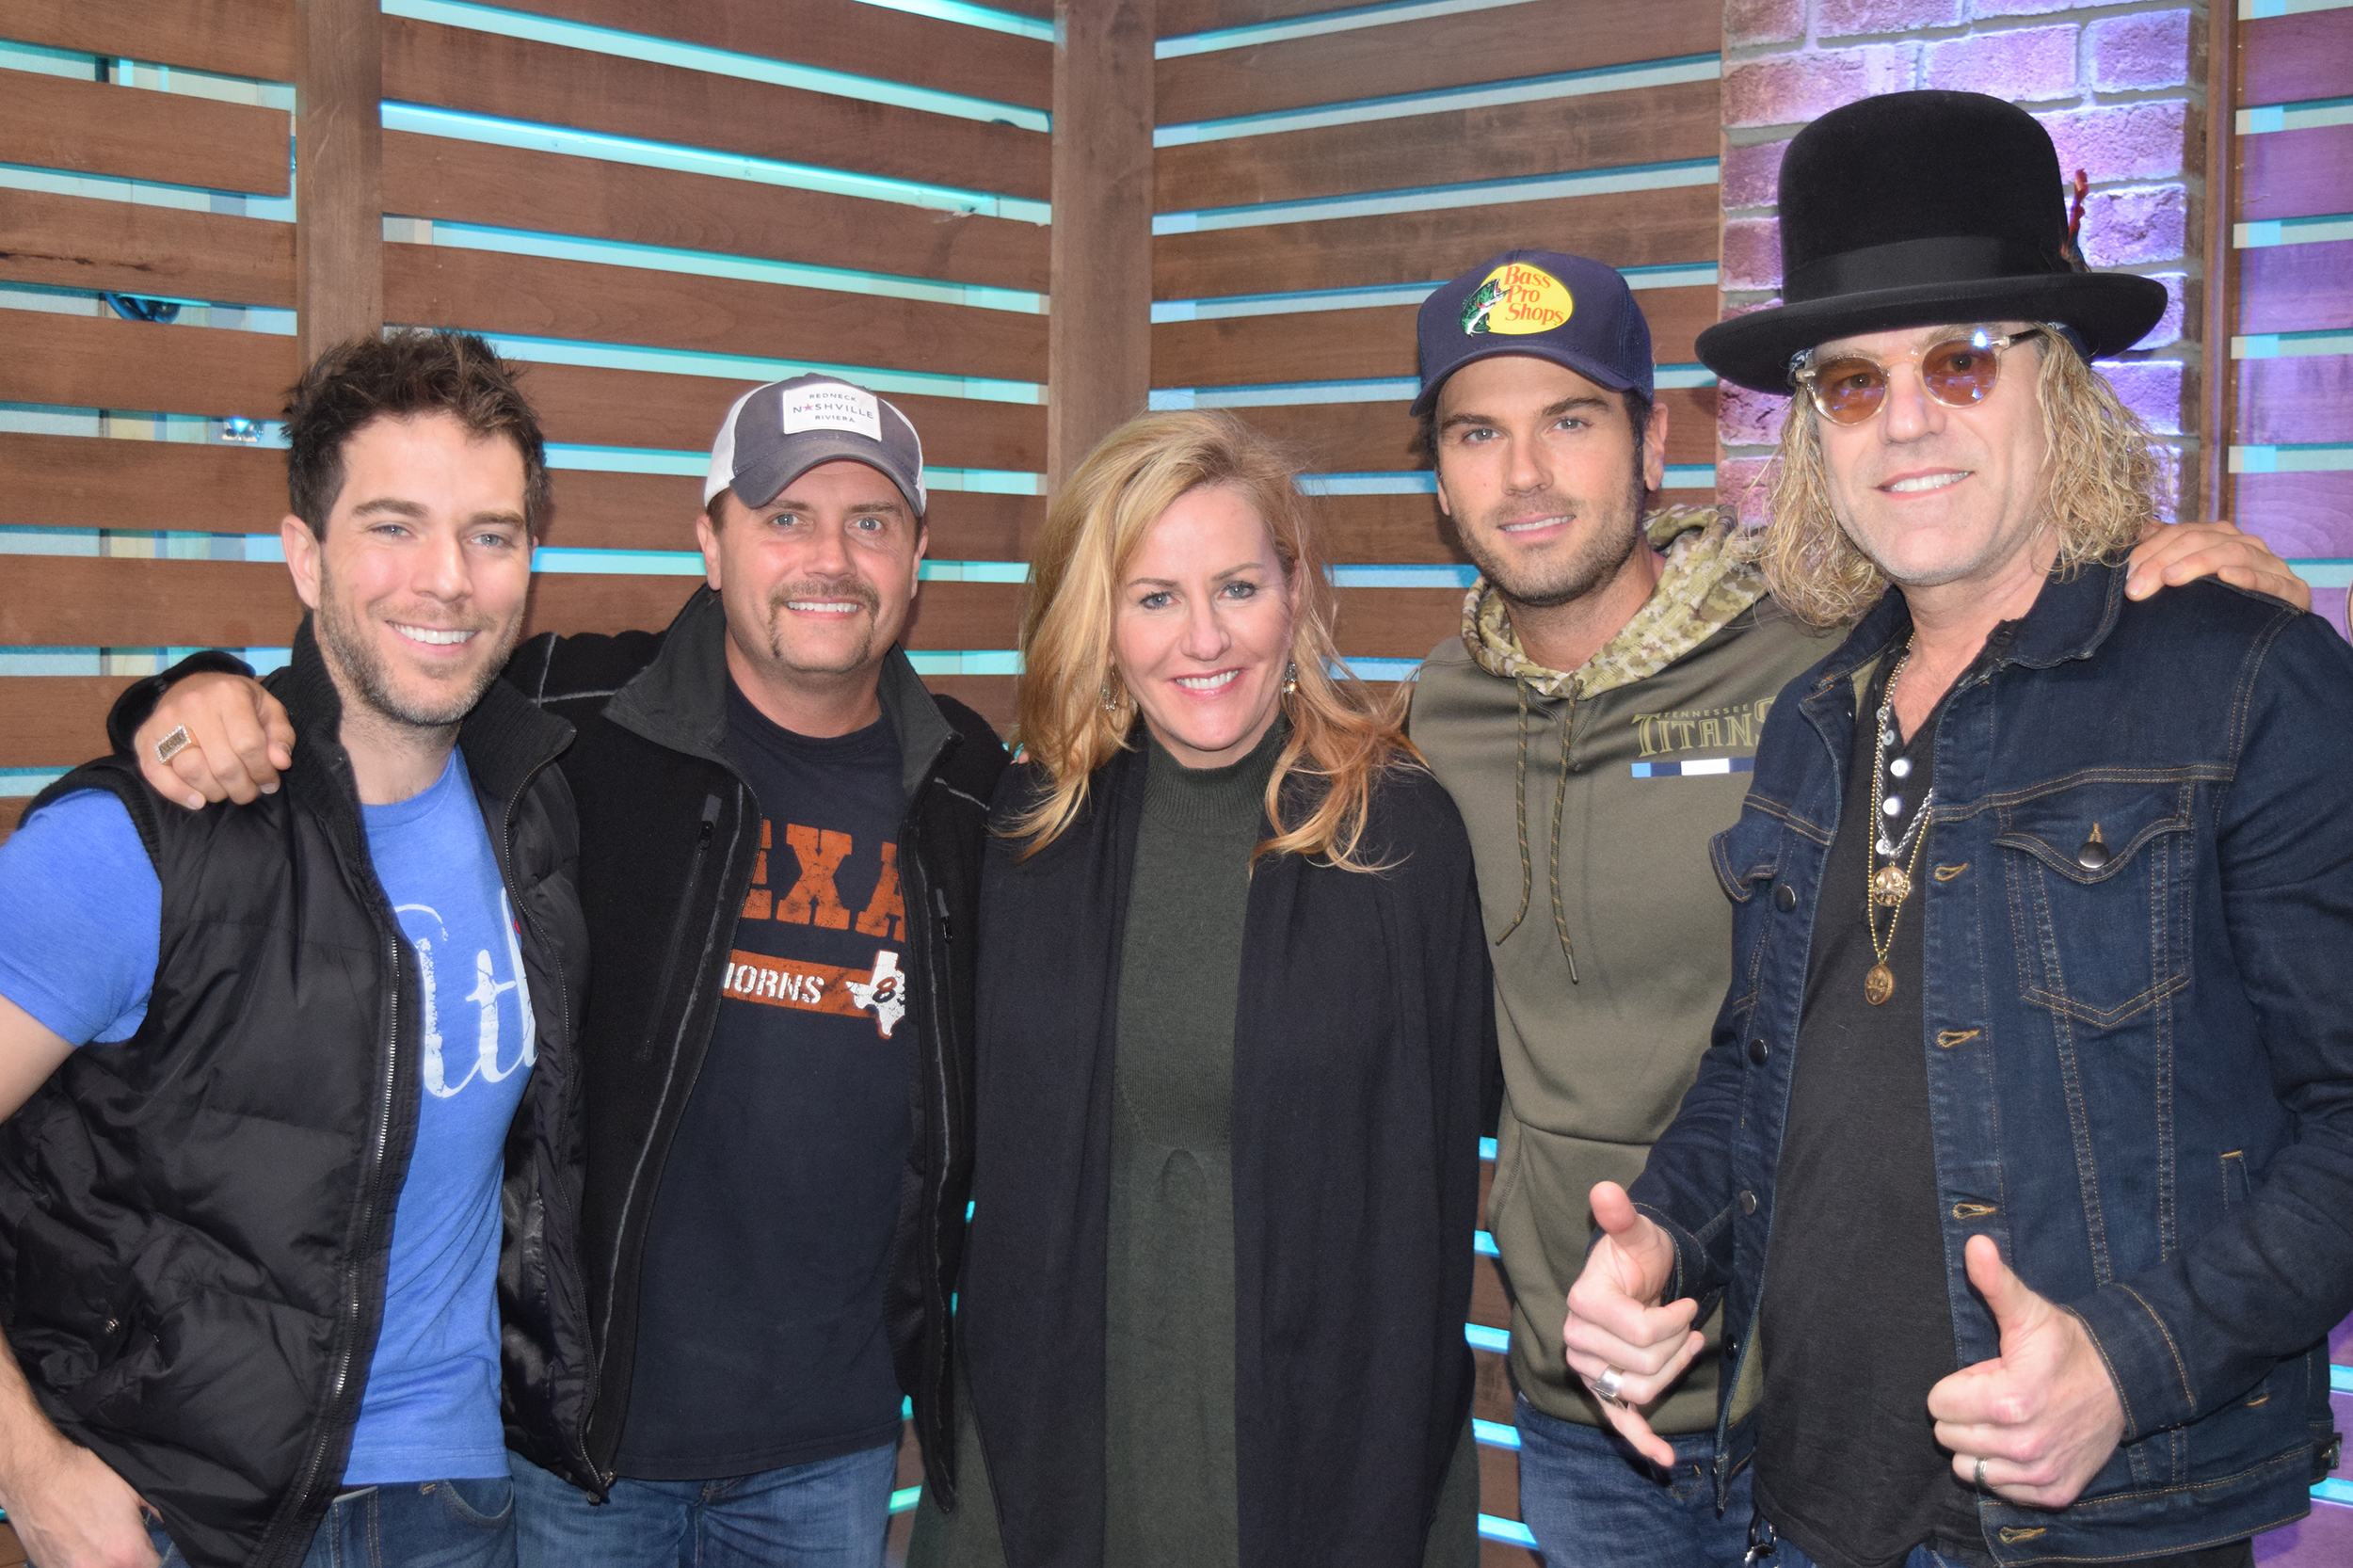 big & rich share holiday plans, name 'naughty & nice' country